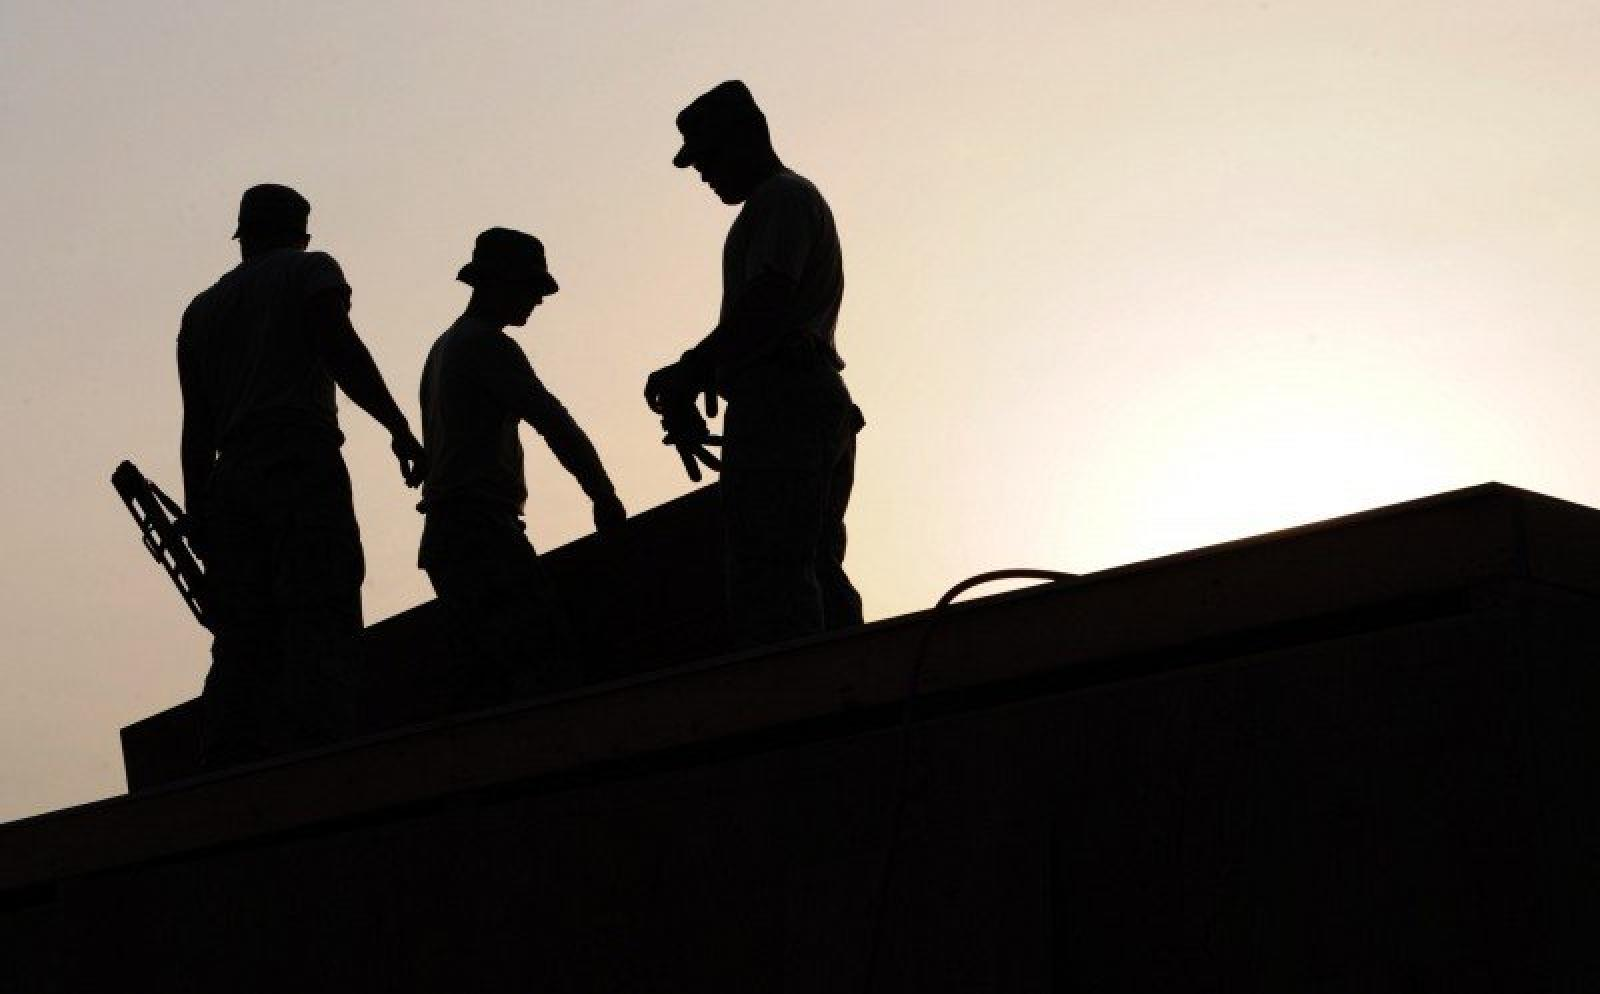 silhouette of workers on construction site